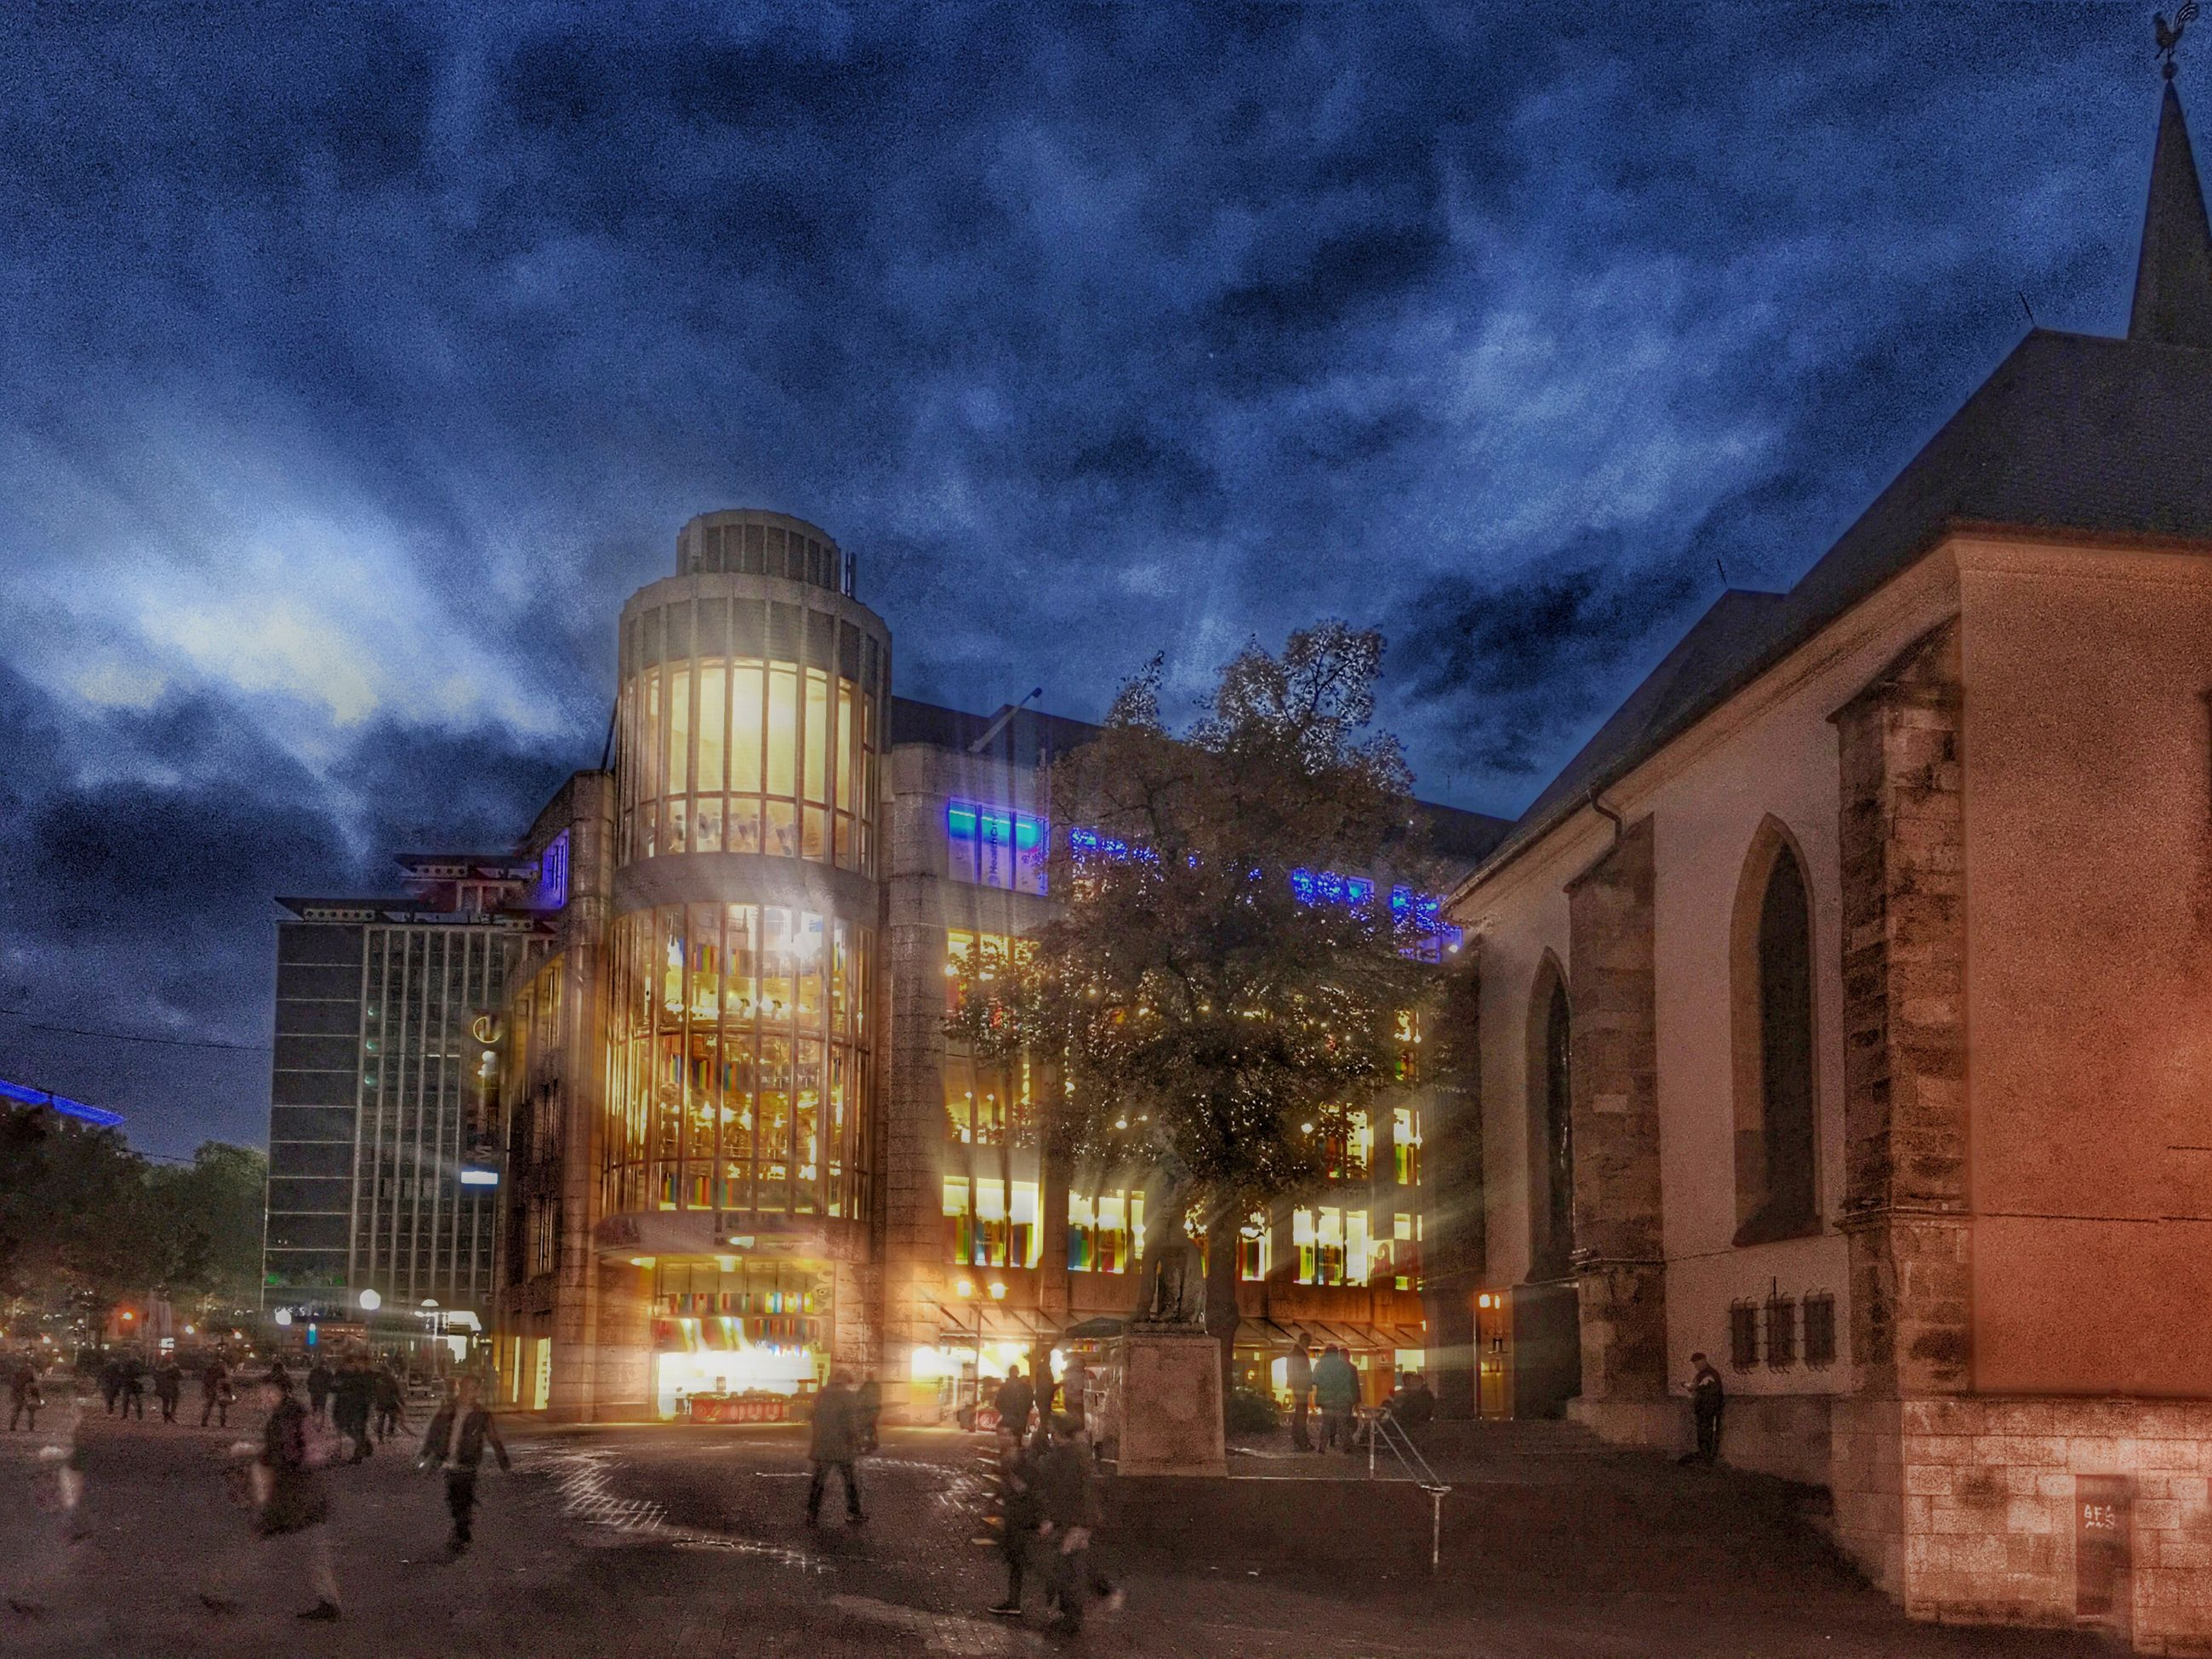 building exterior, architecture, built structure, illuminated, night, sky, cloud - sky, city, building, street light, cloudy, low angle view, dusk, lighting equipment, outdoors, tree, residential building, city life, facade, residential structure